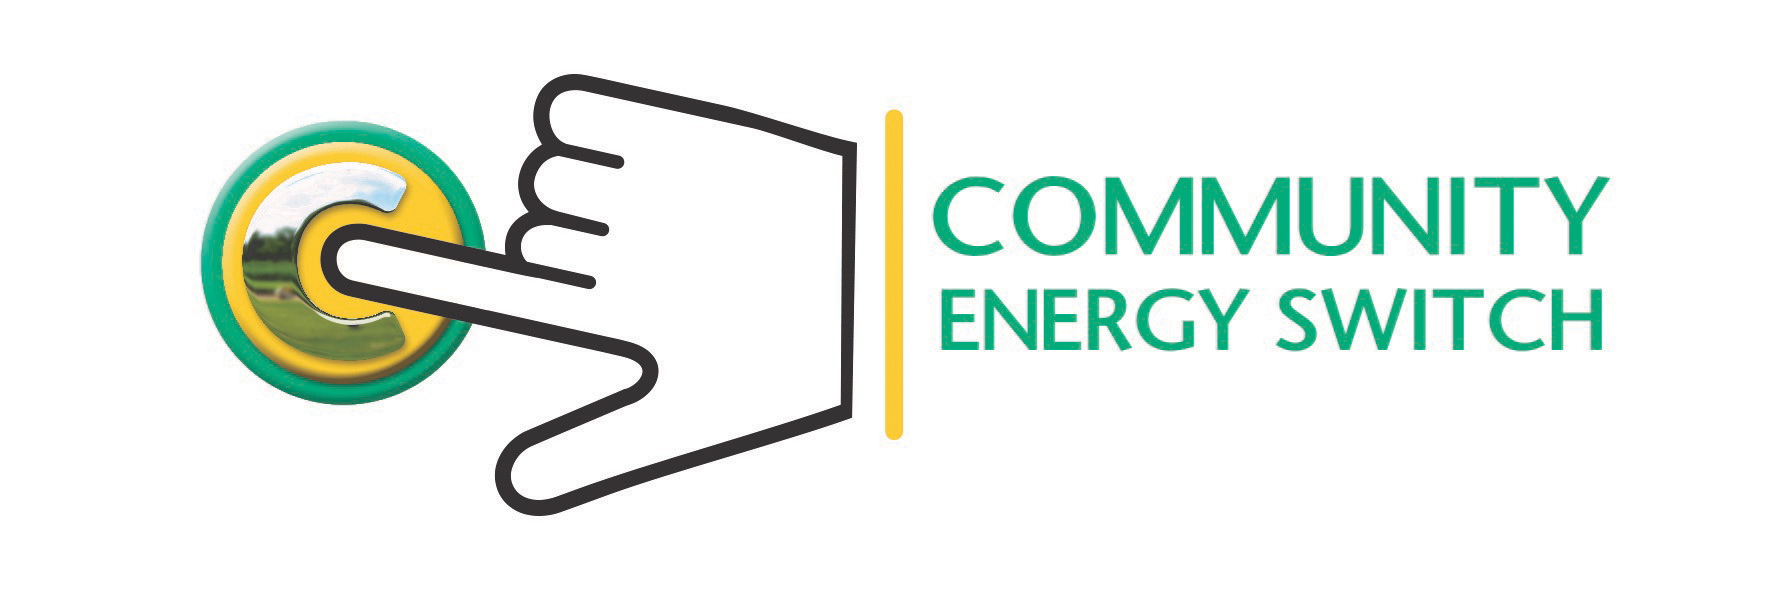 Community Energy Switch – Autumn Scheme